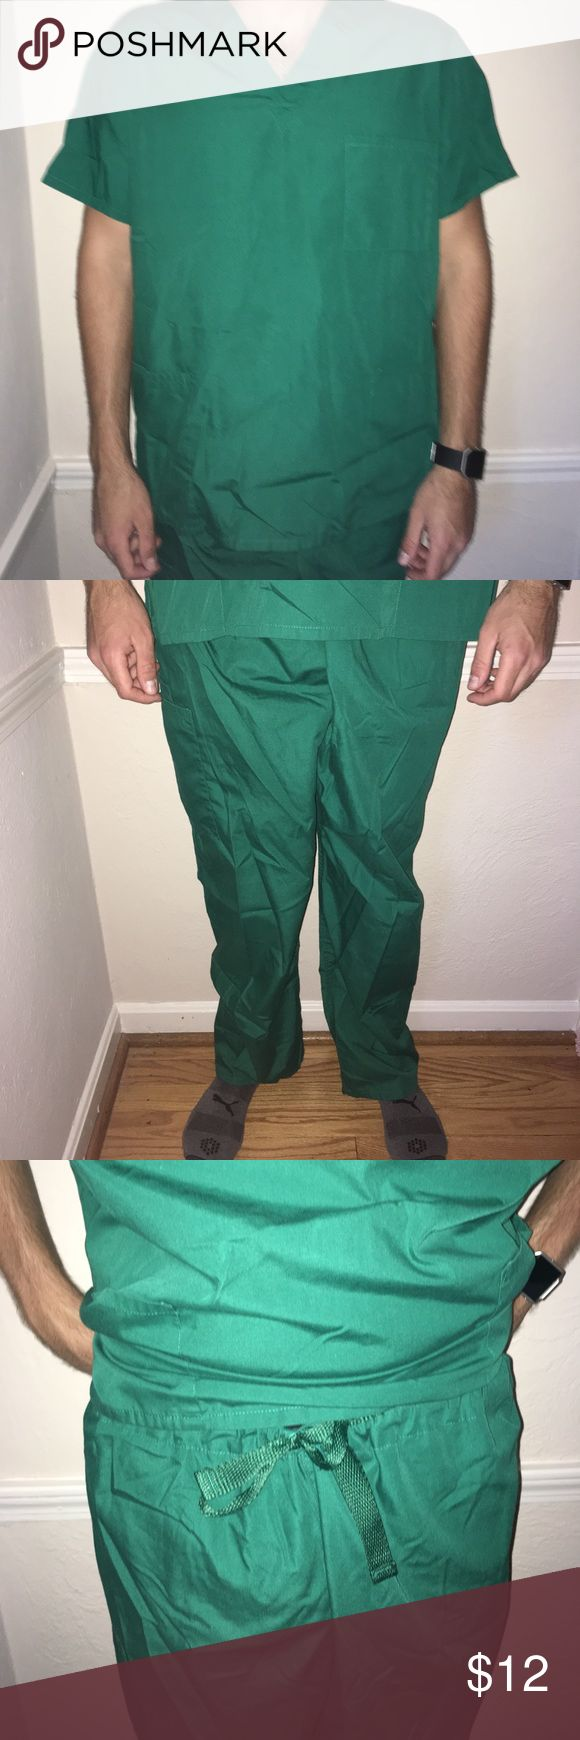 Mens scrub set Size L top and XL bottoms mens scrub set (top and bottom included). Top is v neck, bottoms have draw string tie. EUC. Cherokee brand. Color is HUNW (hunter green) Cherokee Other